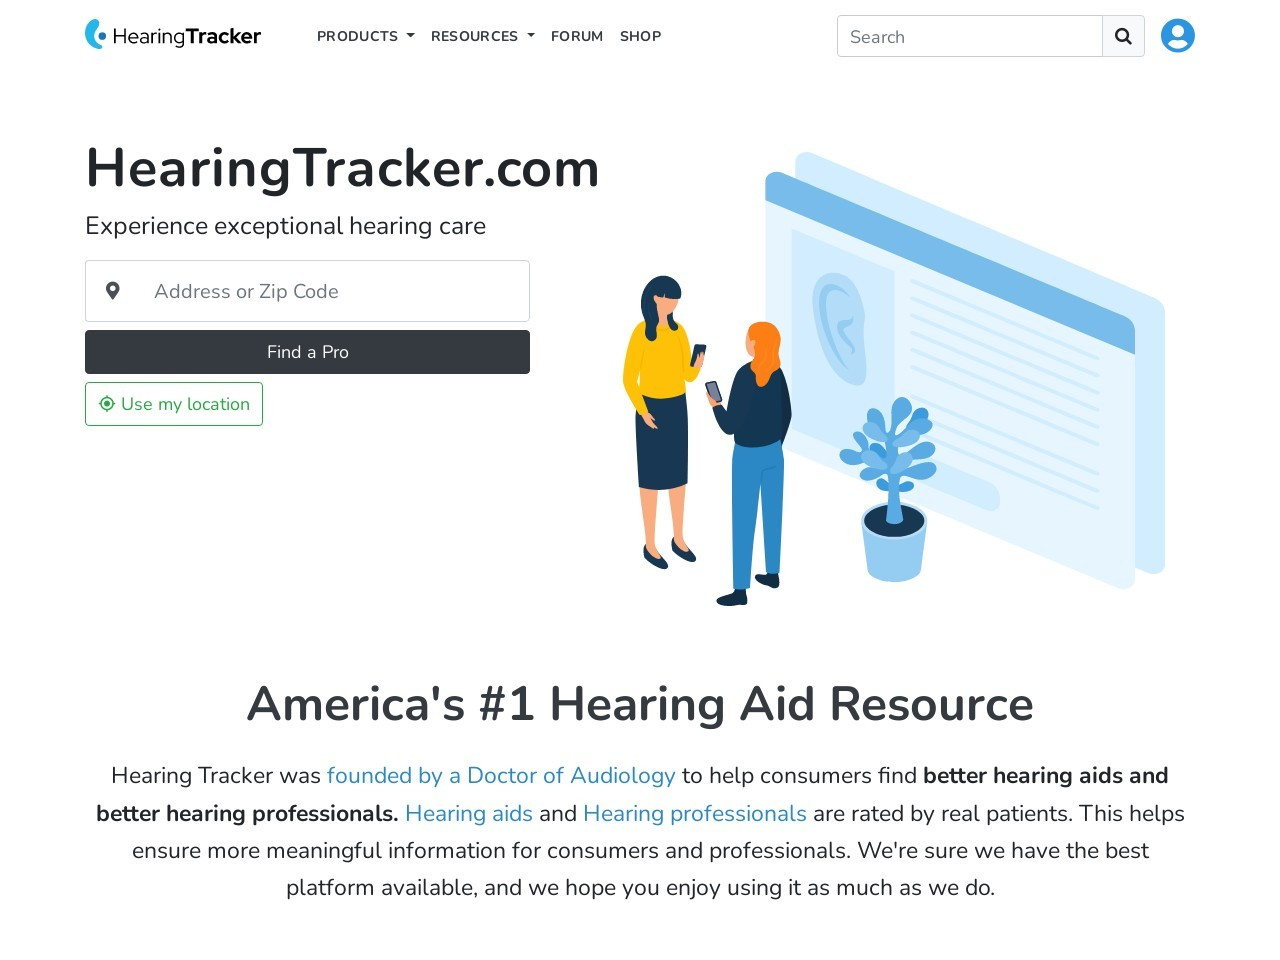 hearingtracker.com